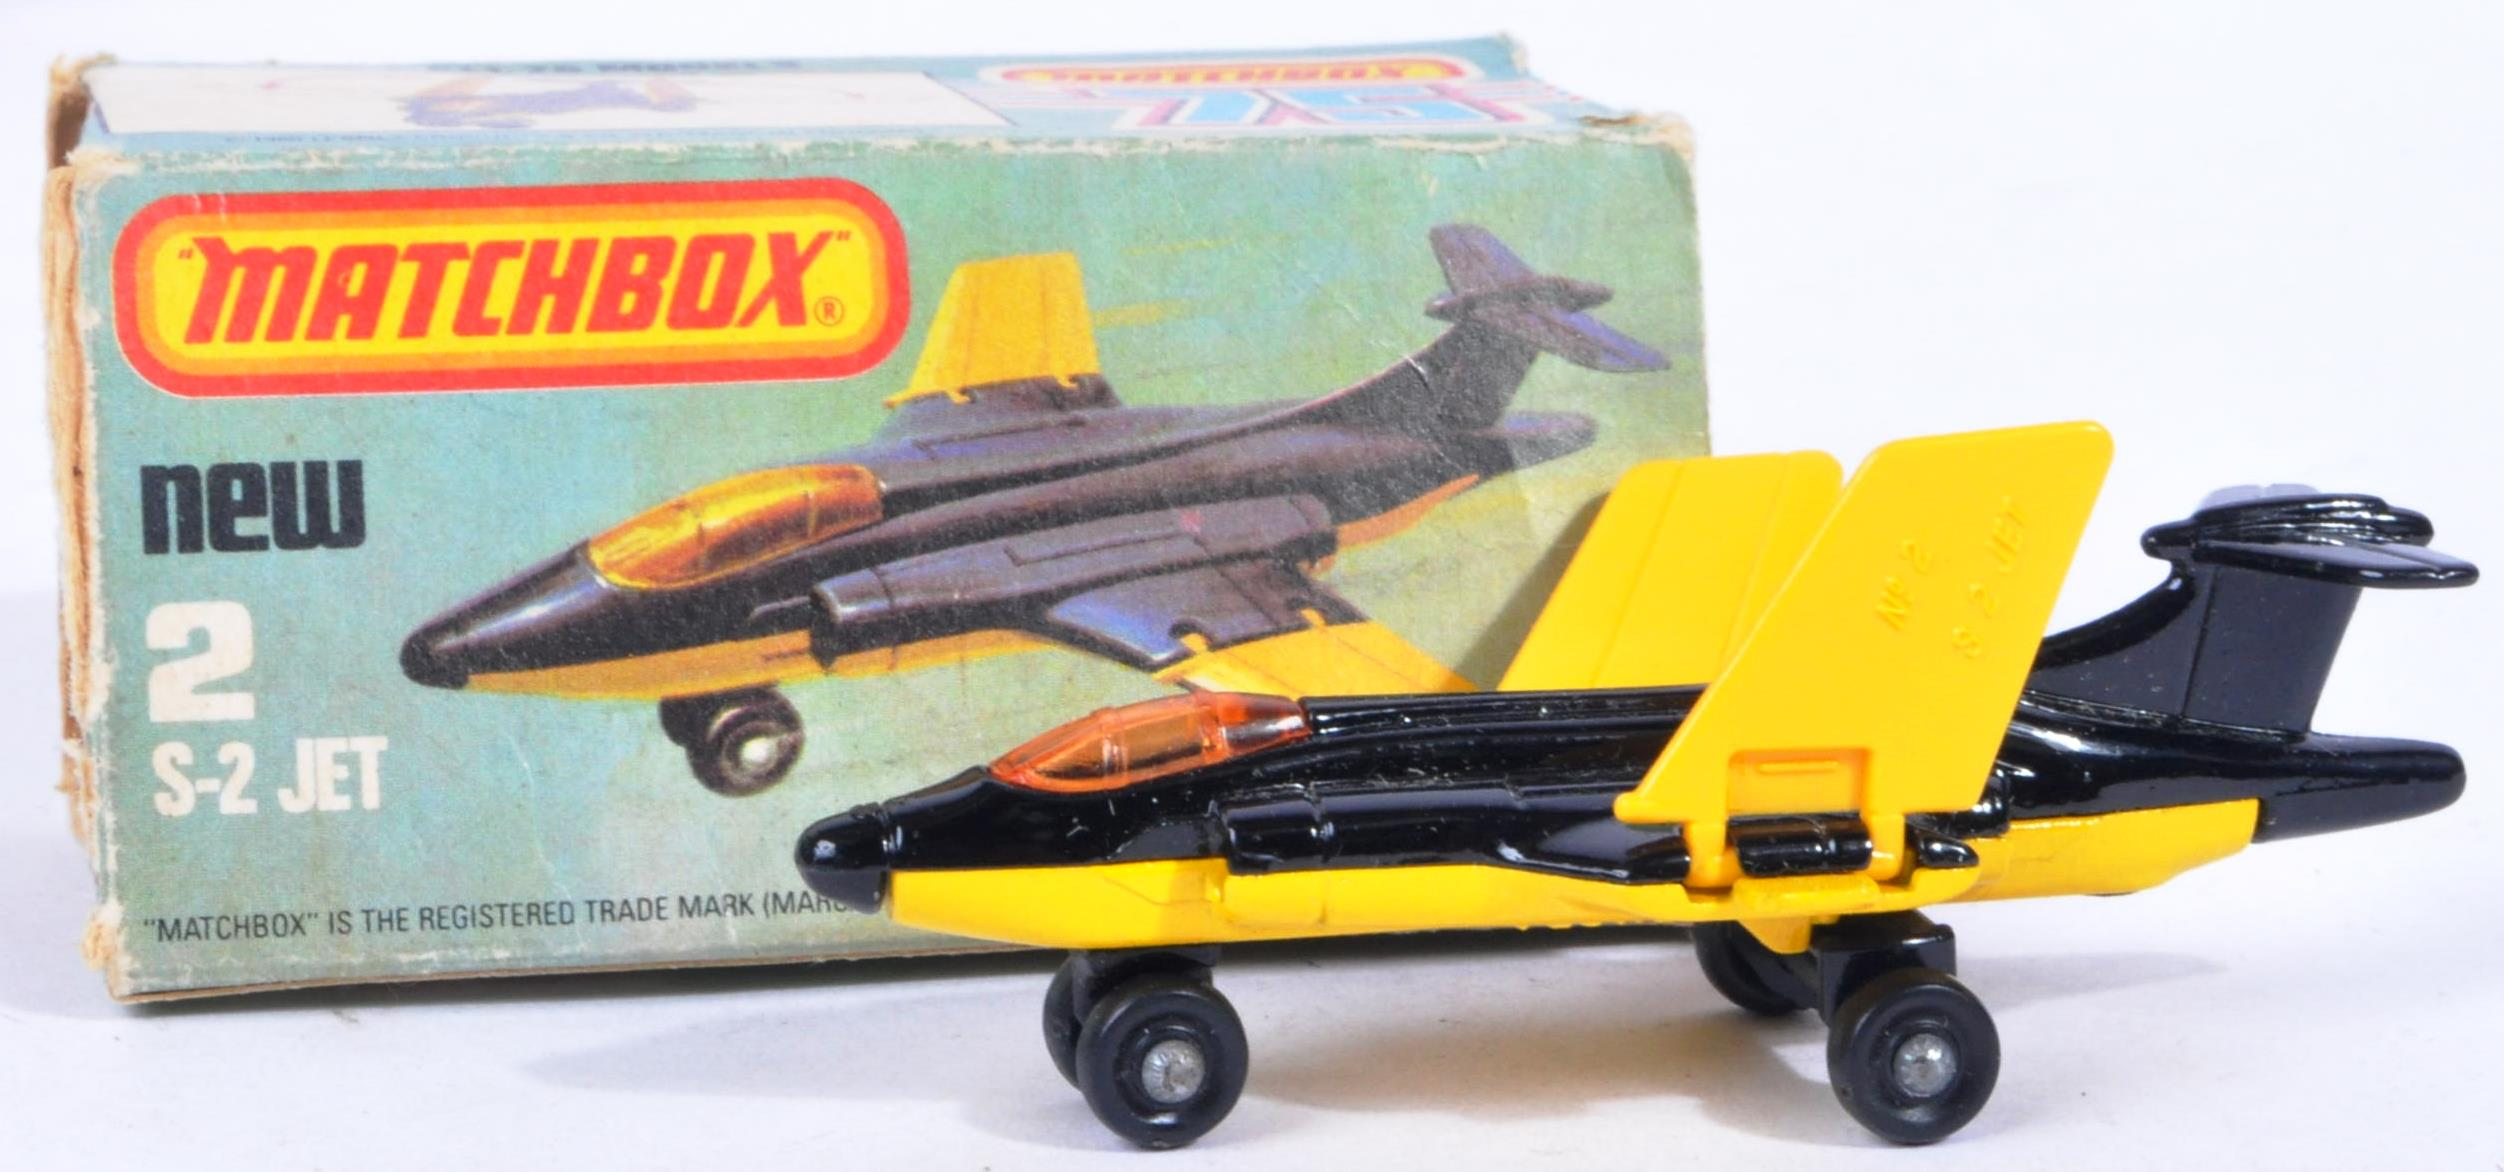 LARGE COLLECTION OF LESNEY MATCHBOX DIECAST MODELS - Image 4 of 8